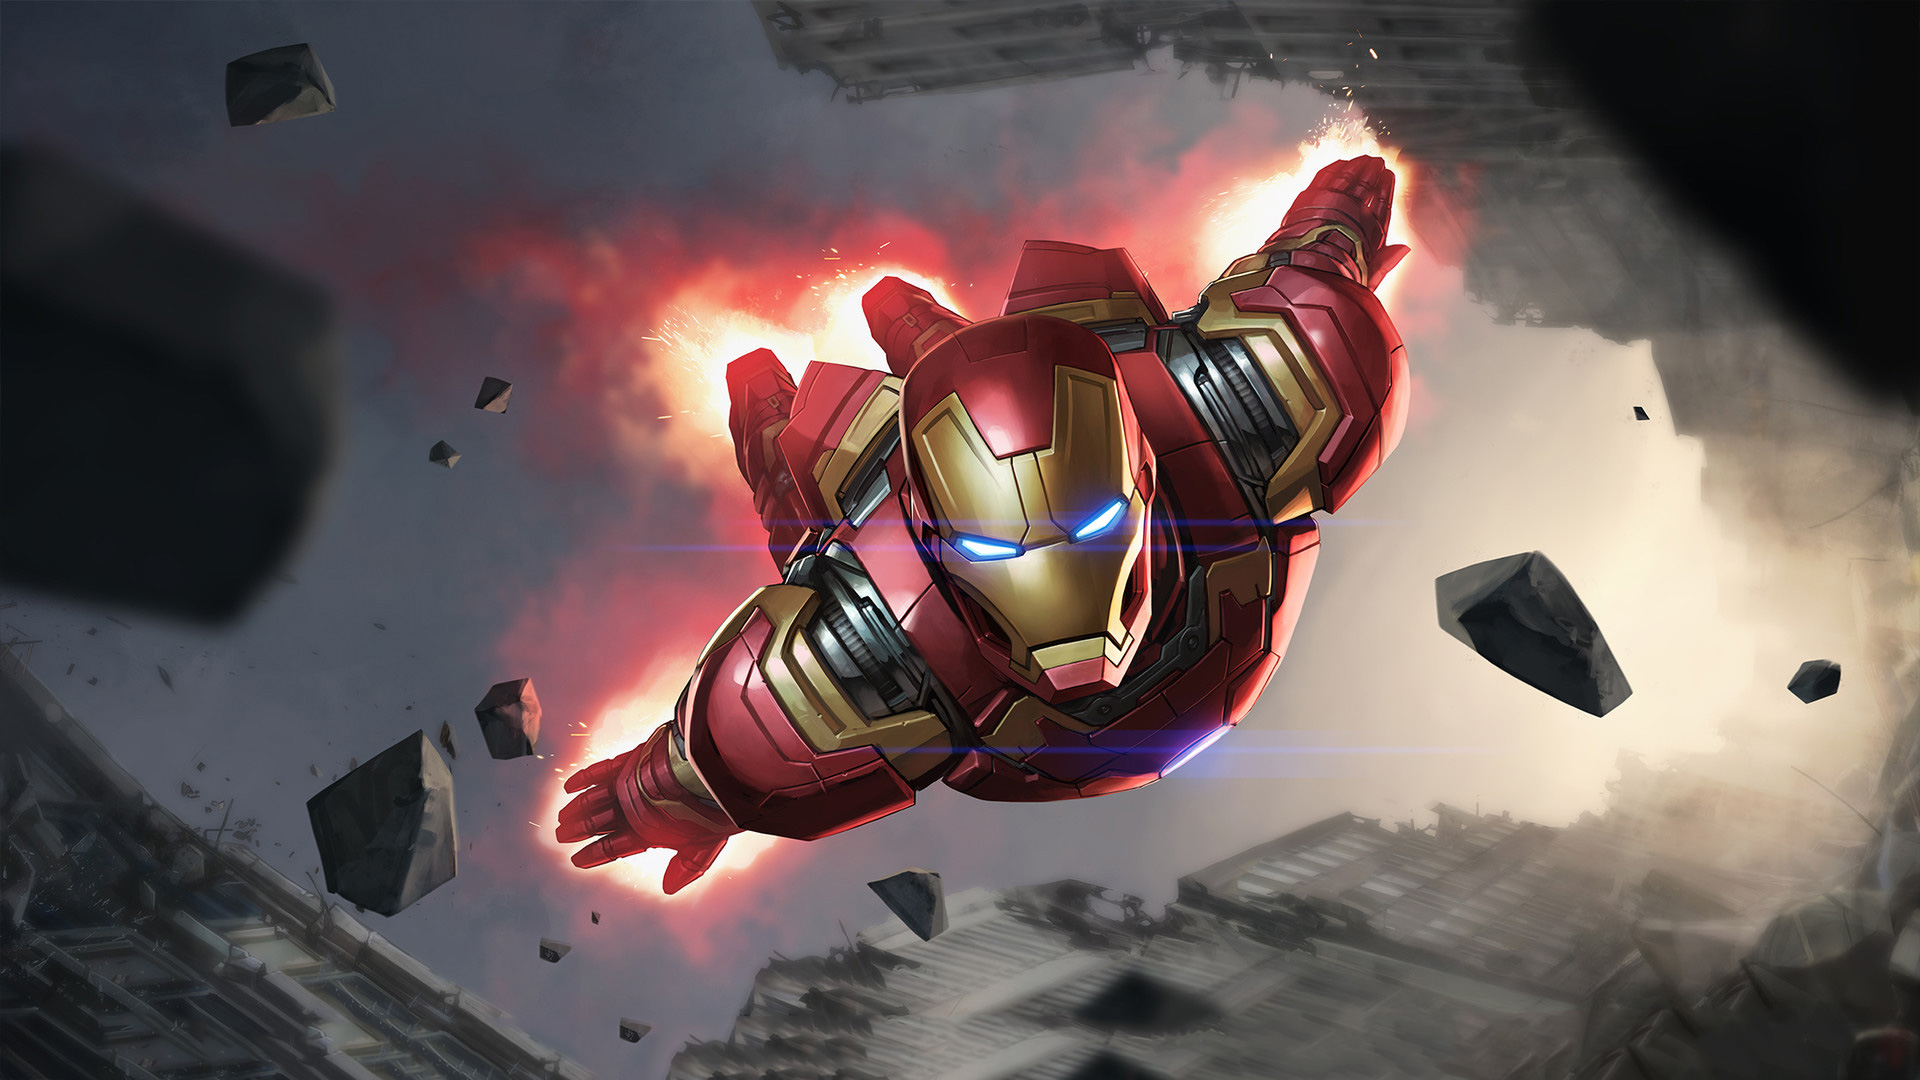 Iron Man Artwork Fan Made, HD Superheroes, 4k Wallpapers, Images